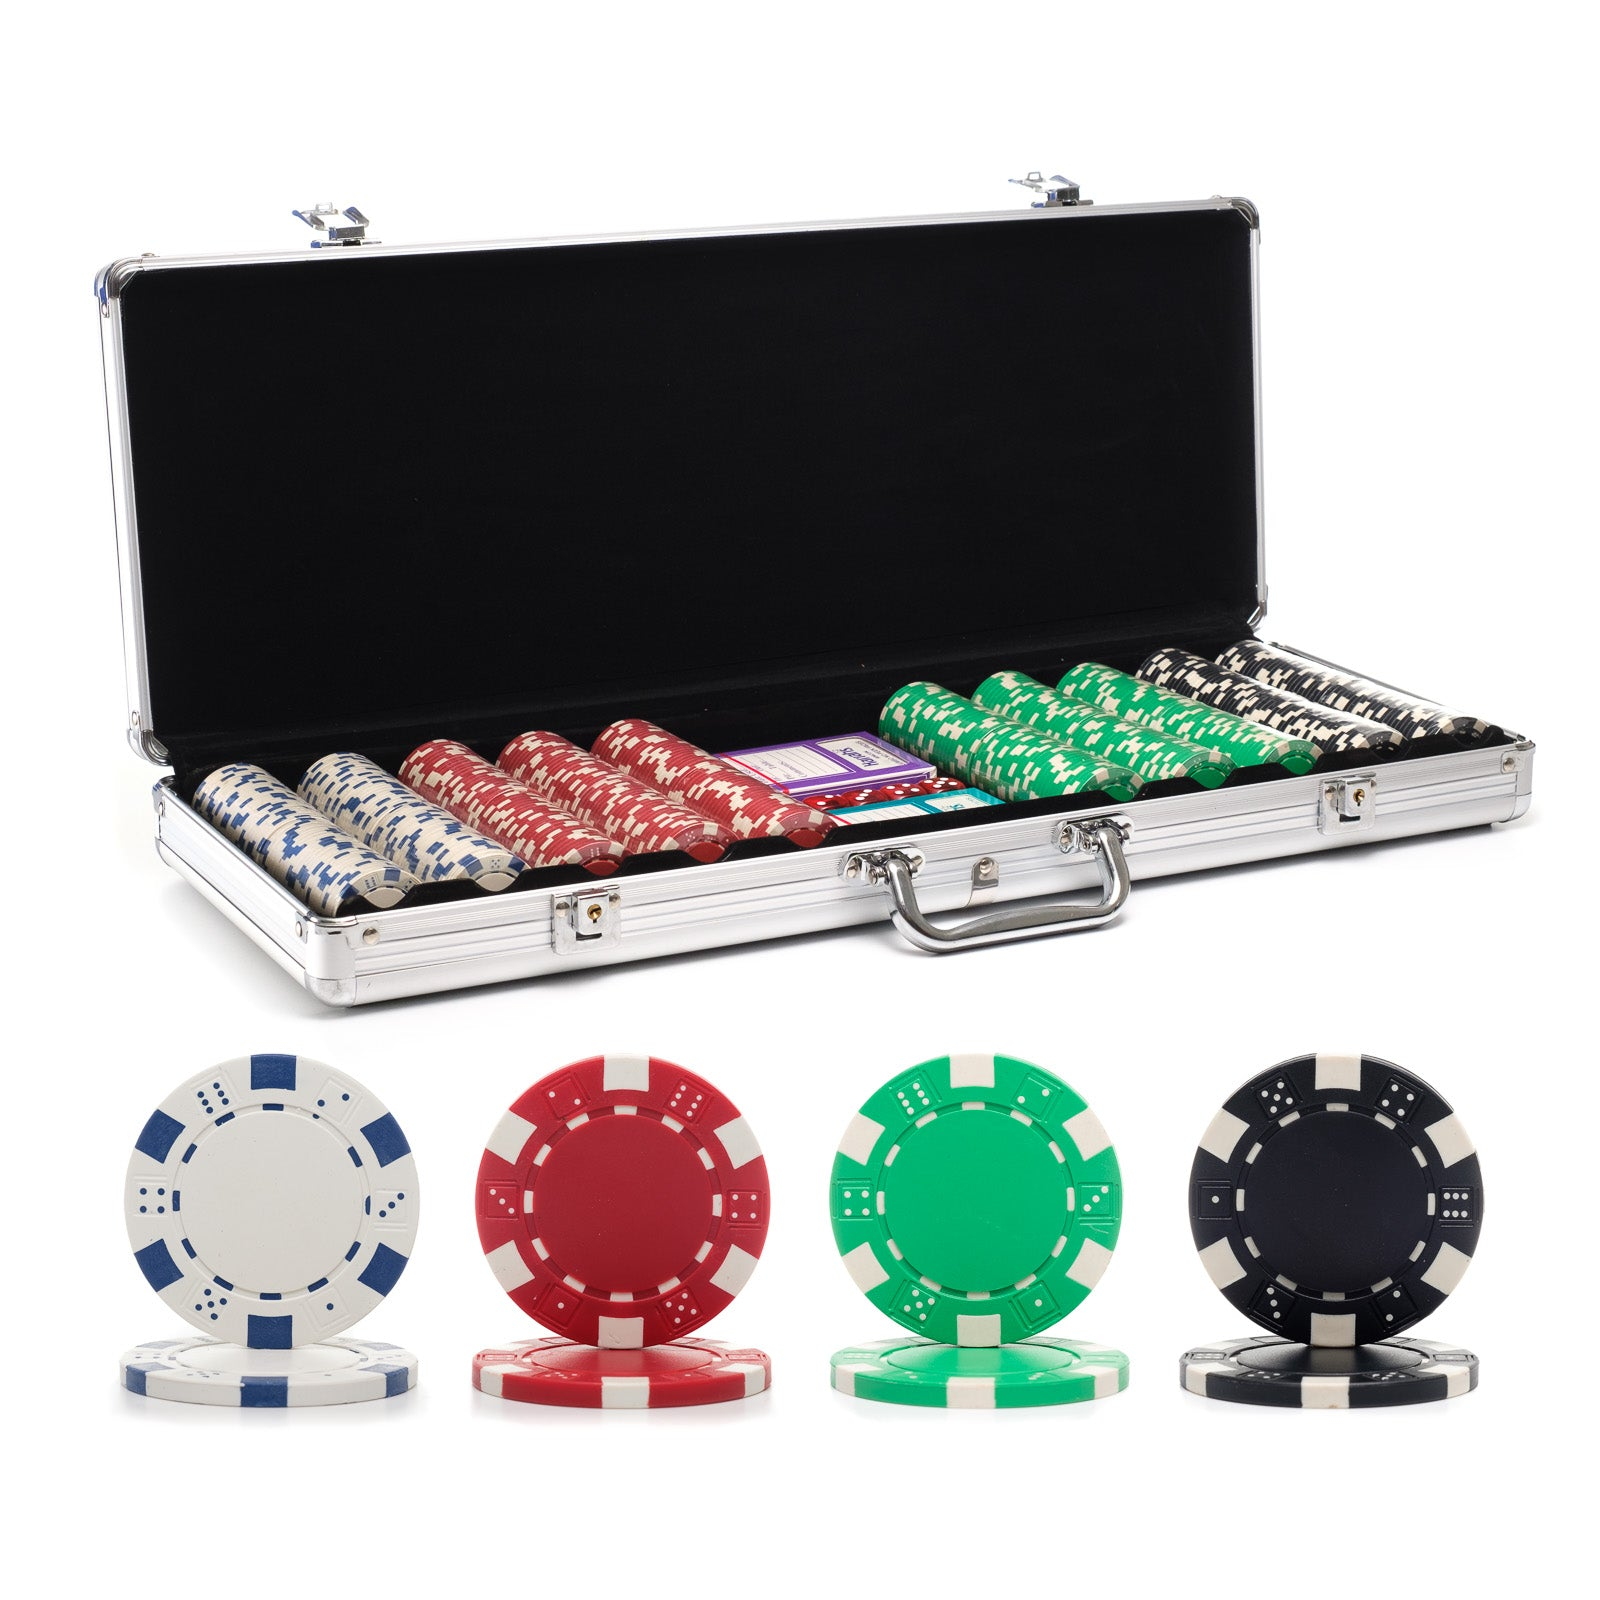 500 poker chips 11.5 gram dice edge choice of 10 colors